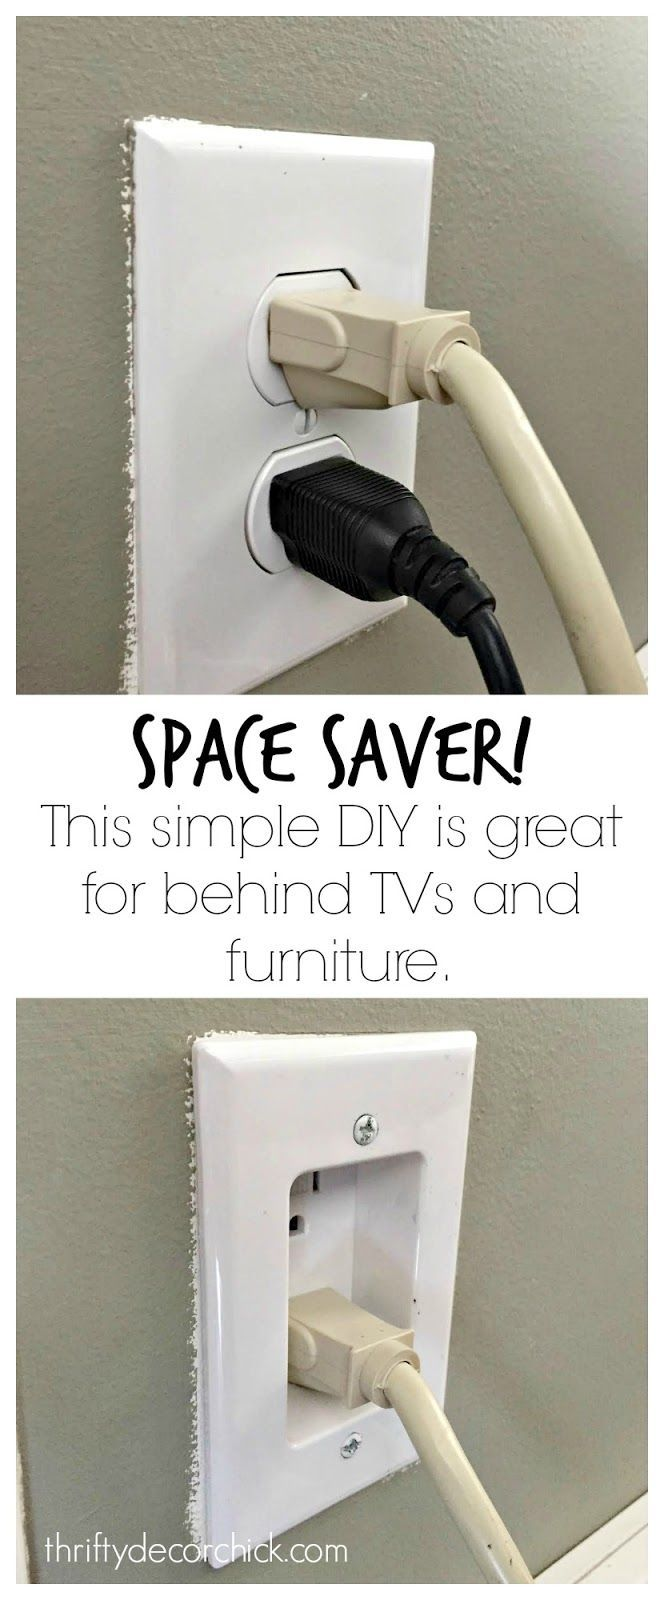 Space Saver! This simple DIY is great for behind TVs and furniture!